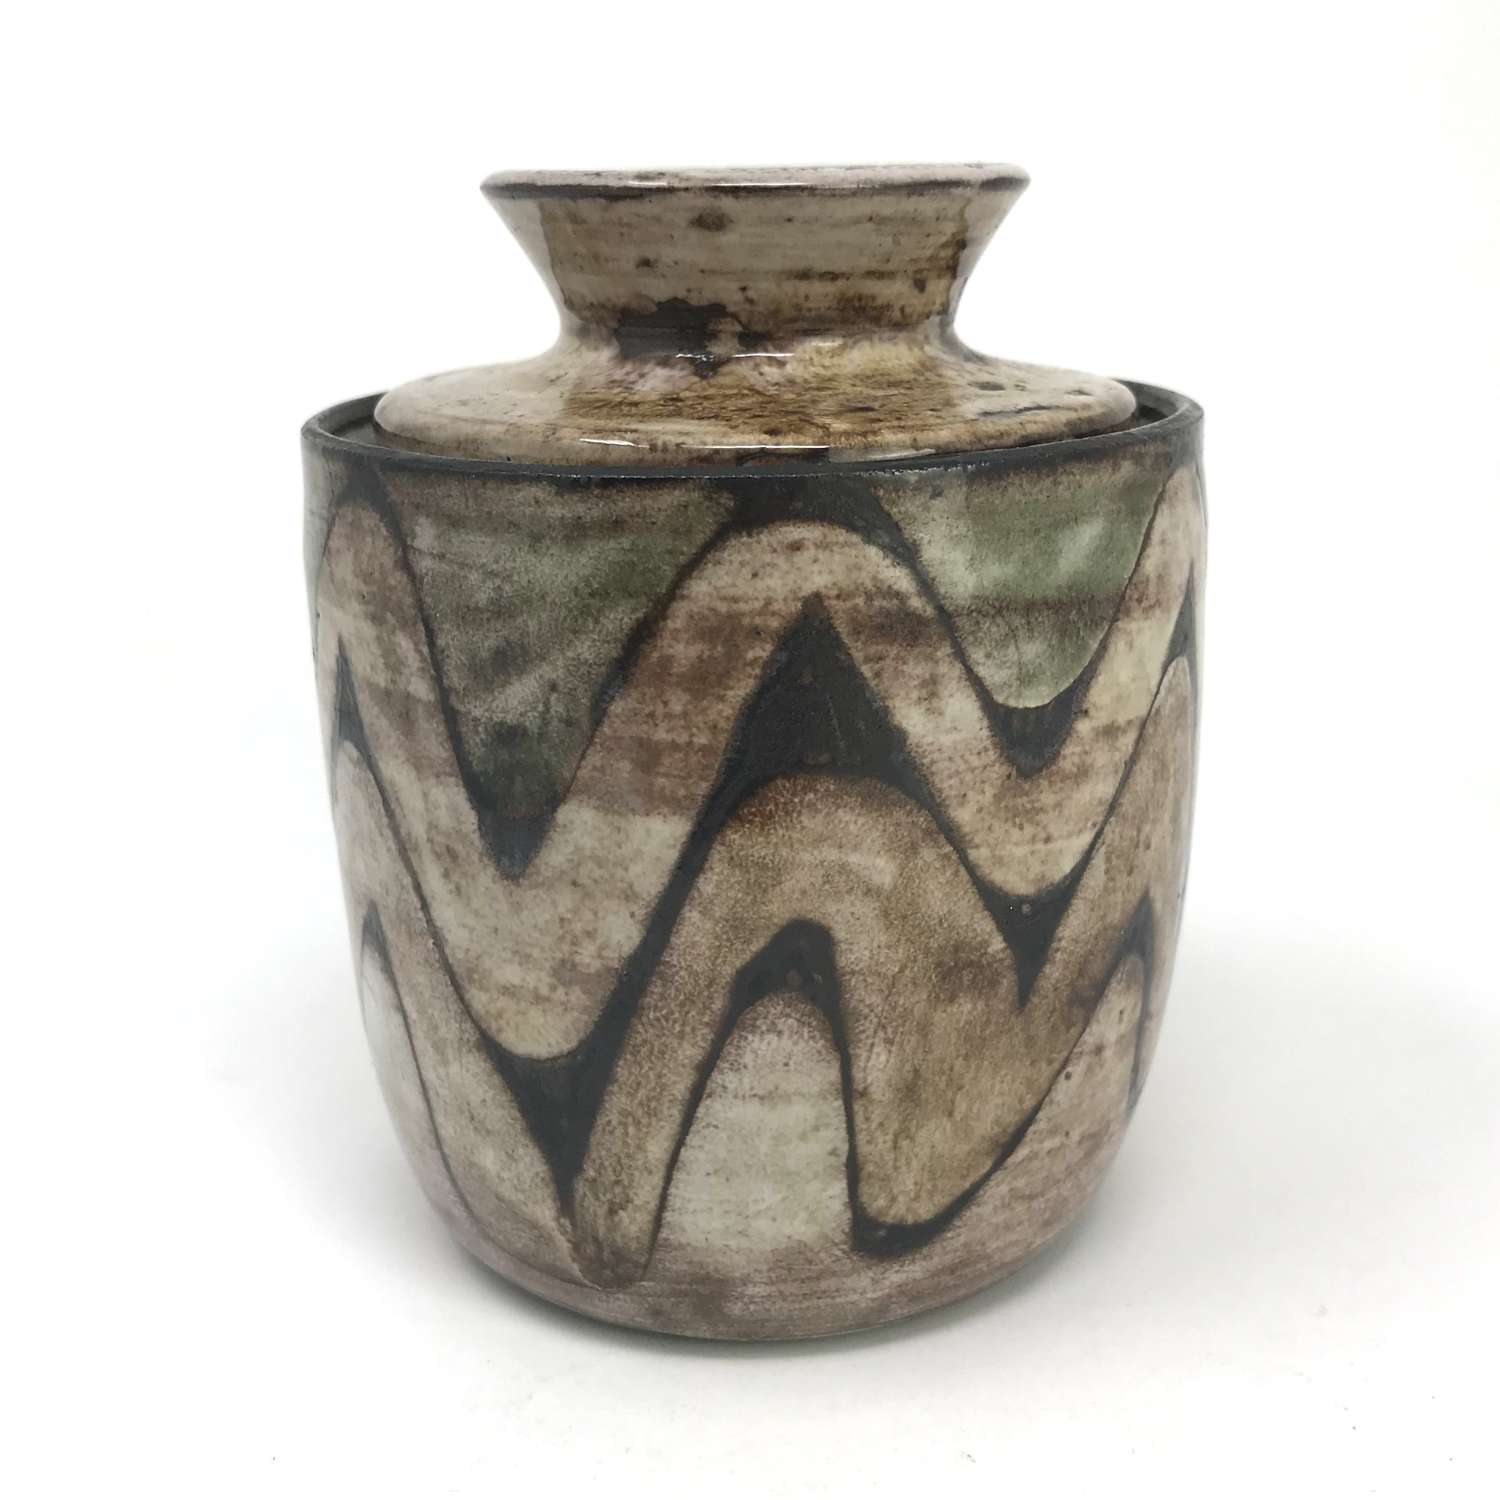 Robert Perot Lidded Pot Vieux Moulin Vallauris France 1960s